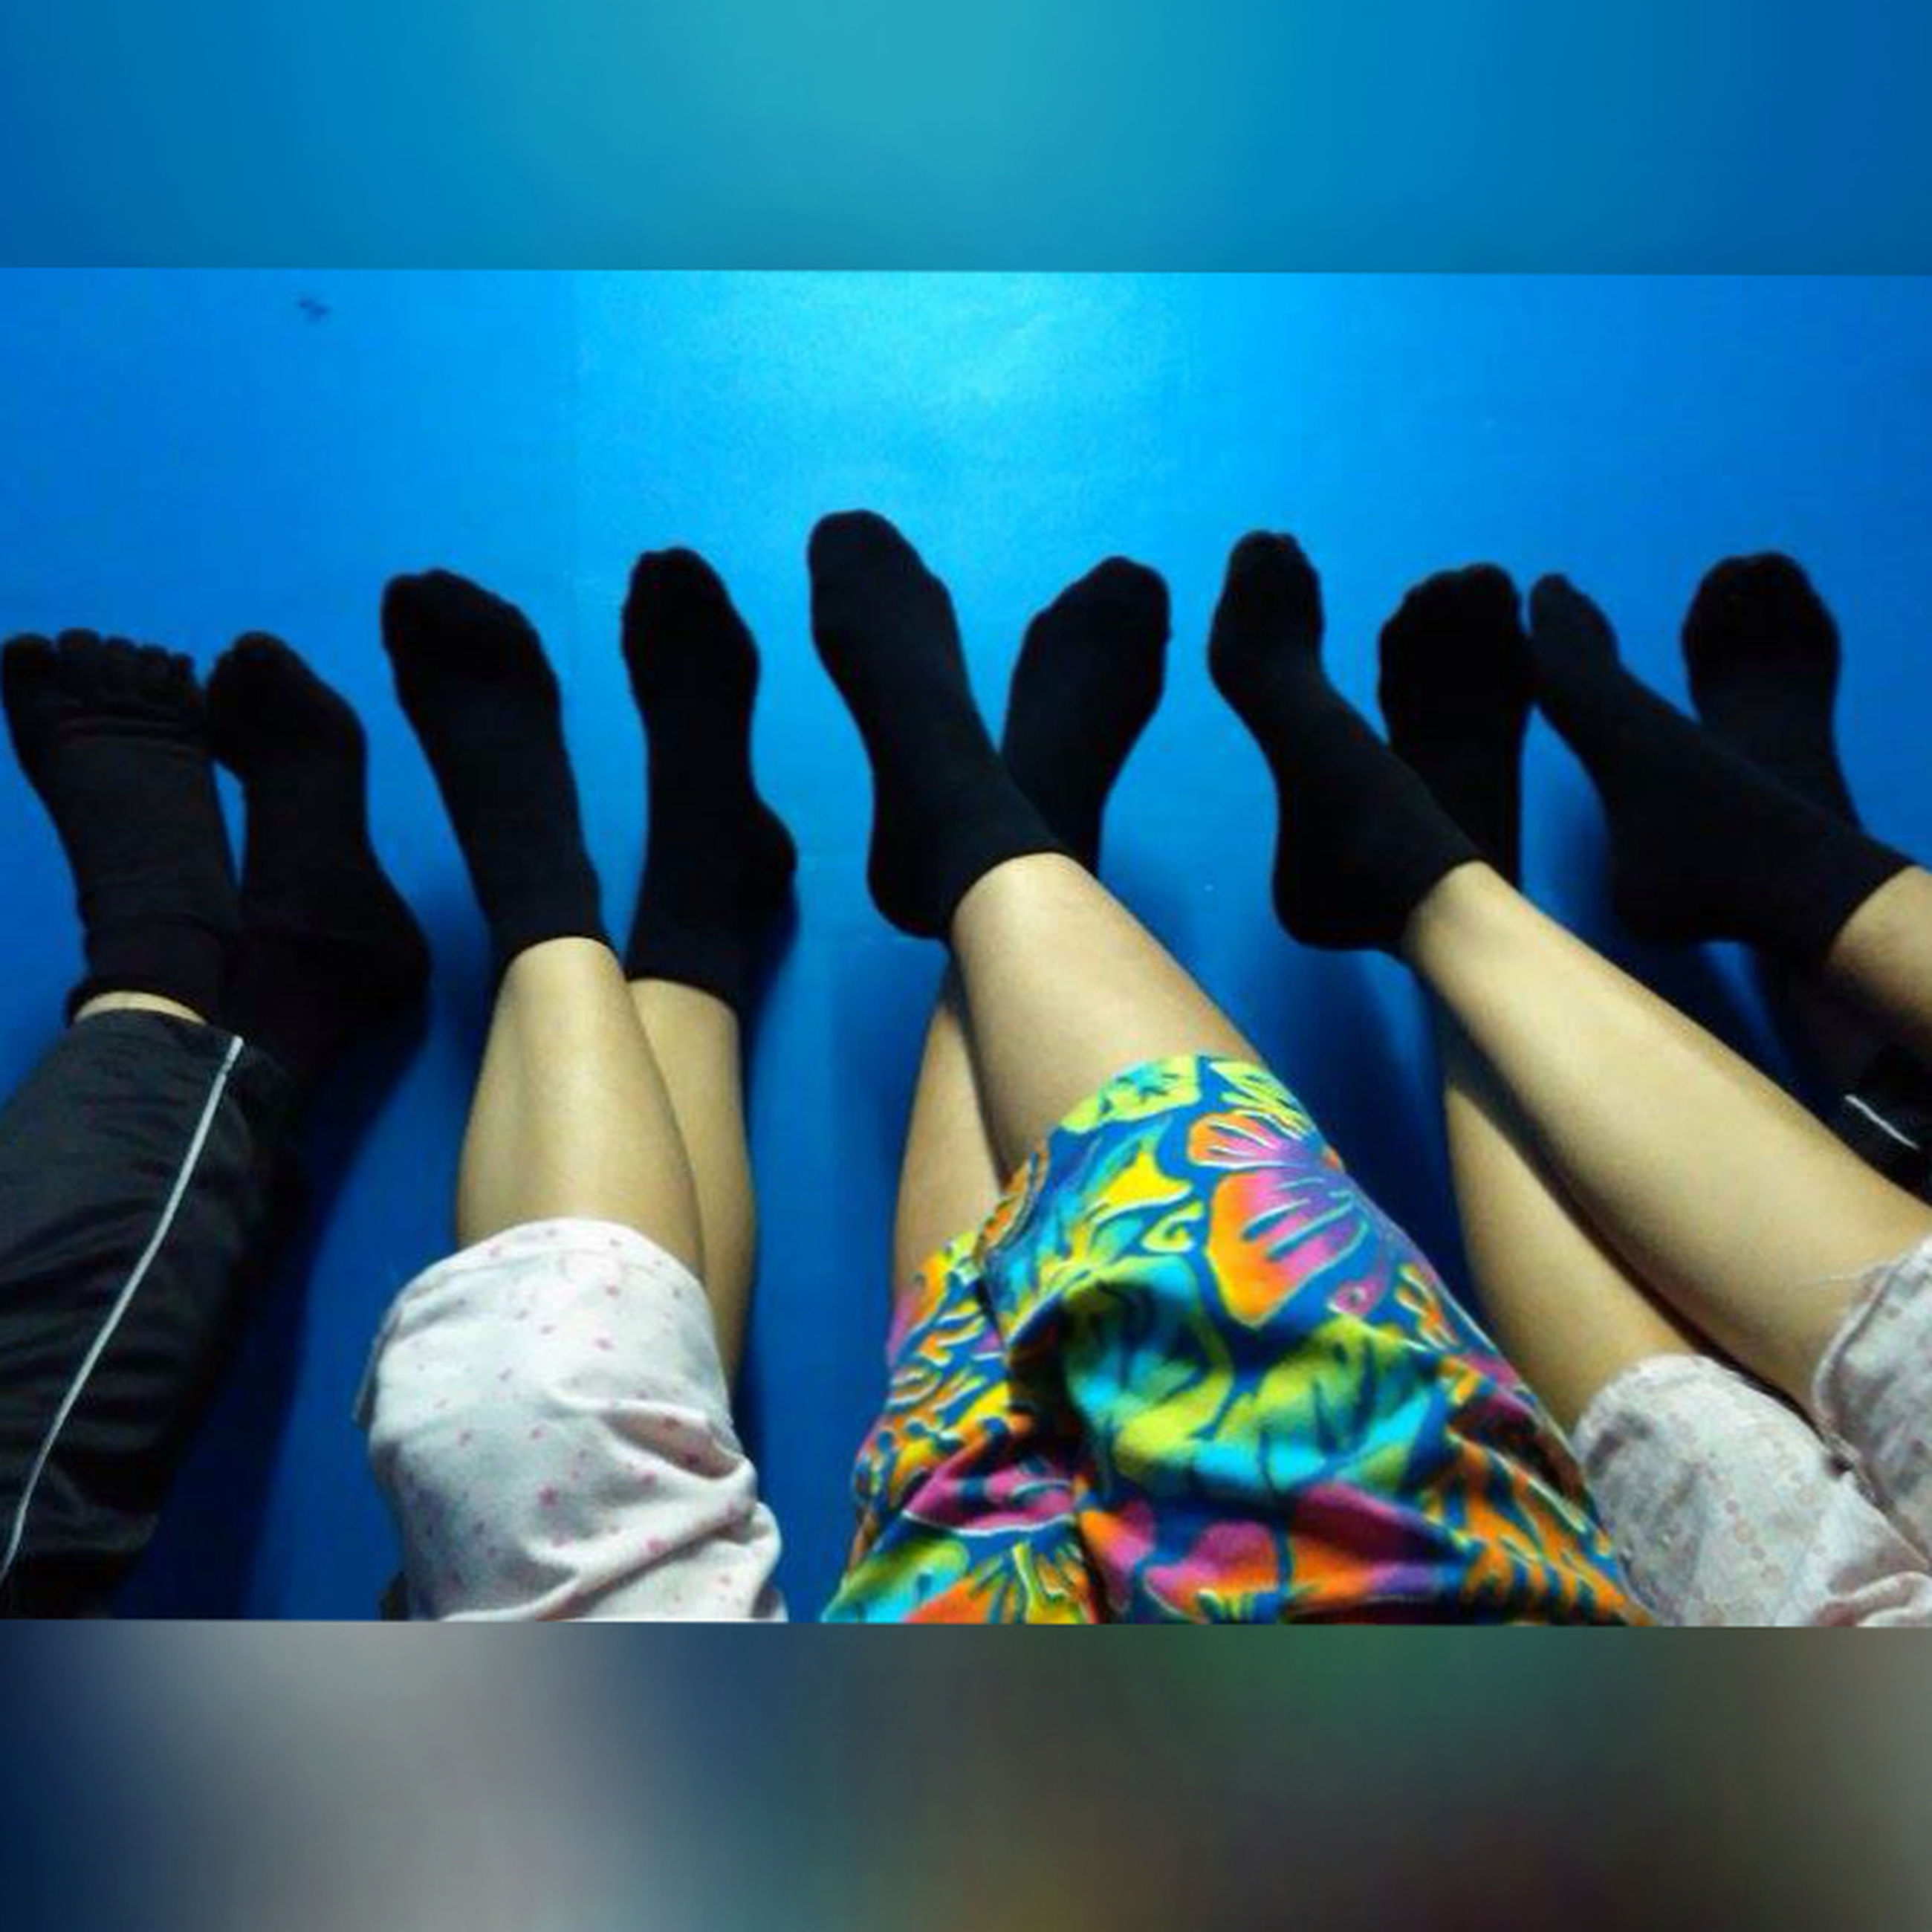 lifestyles, person, low section, leisure activity, sitting, blue, relaxation, standing, men, shoe, casual clothing, togetherness, day, human foot, personal perspective, outdoors